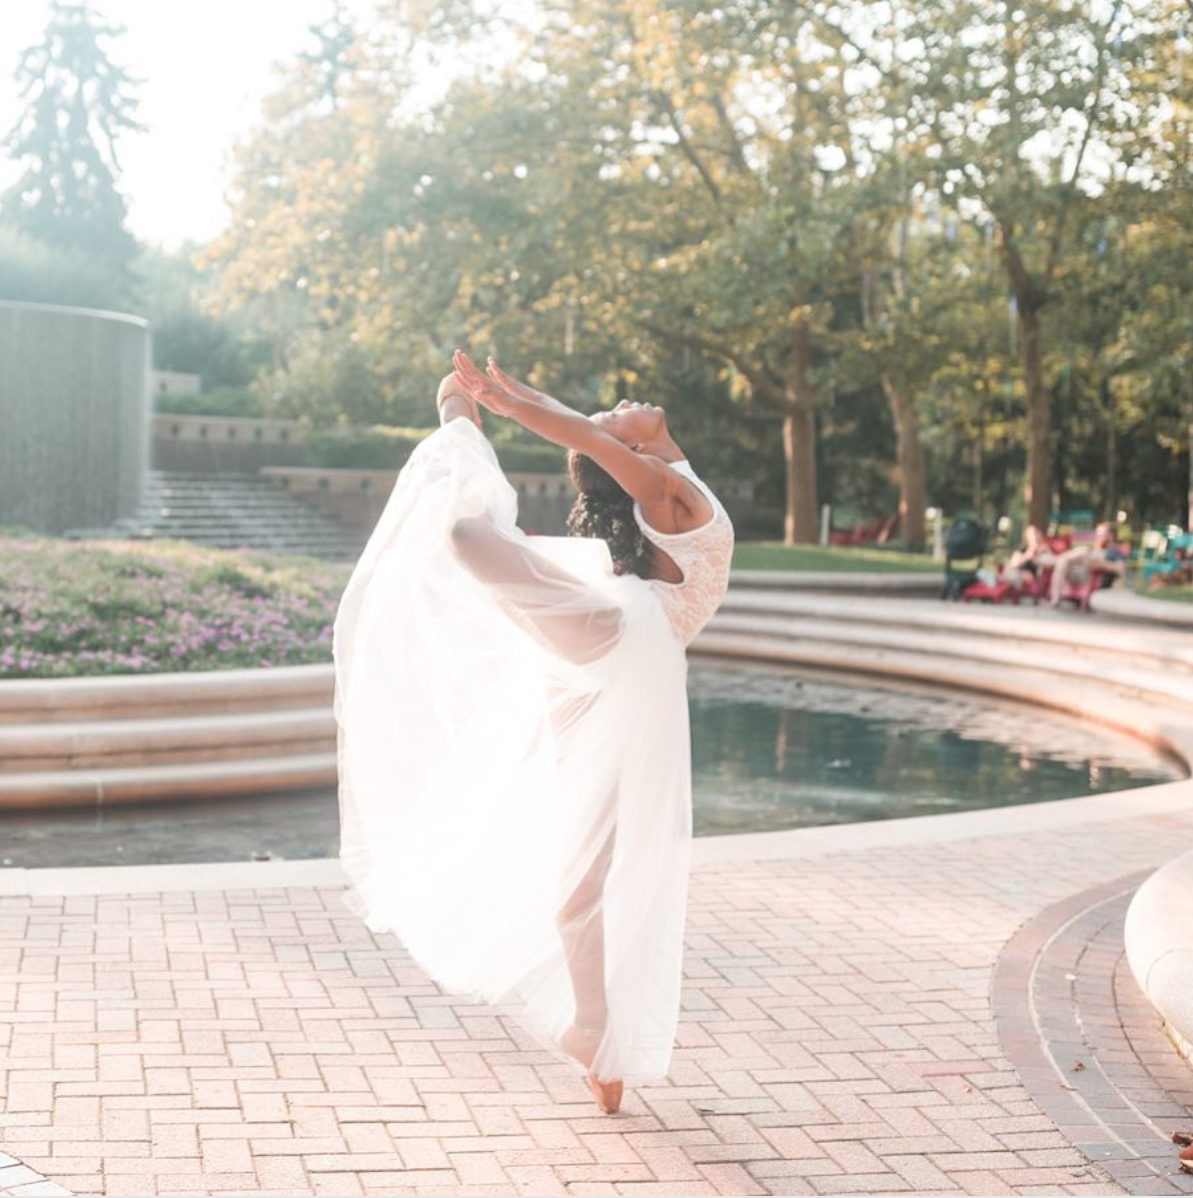 While ballerinas may not roam the streets every day, there are plenty of places to strike a pose. (Image via @Imagebylauraquinterophotography featuring @thedancer_nya)